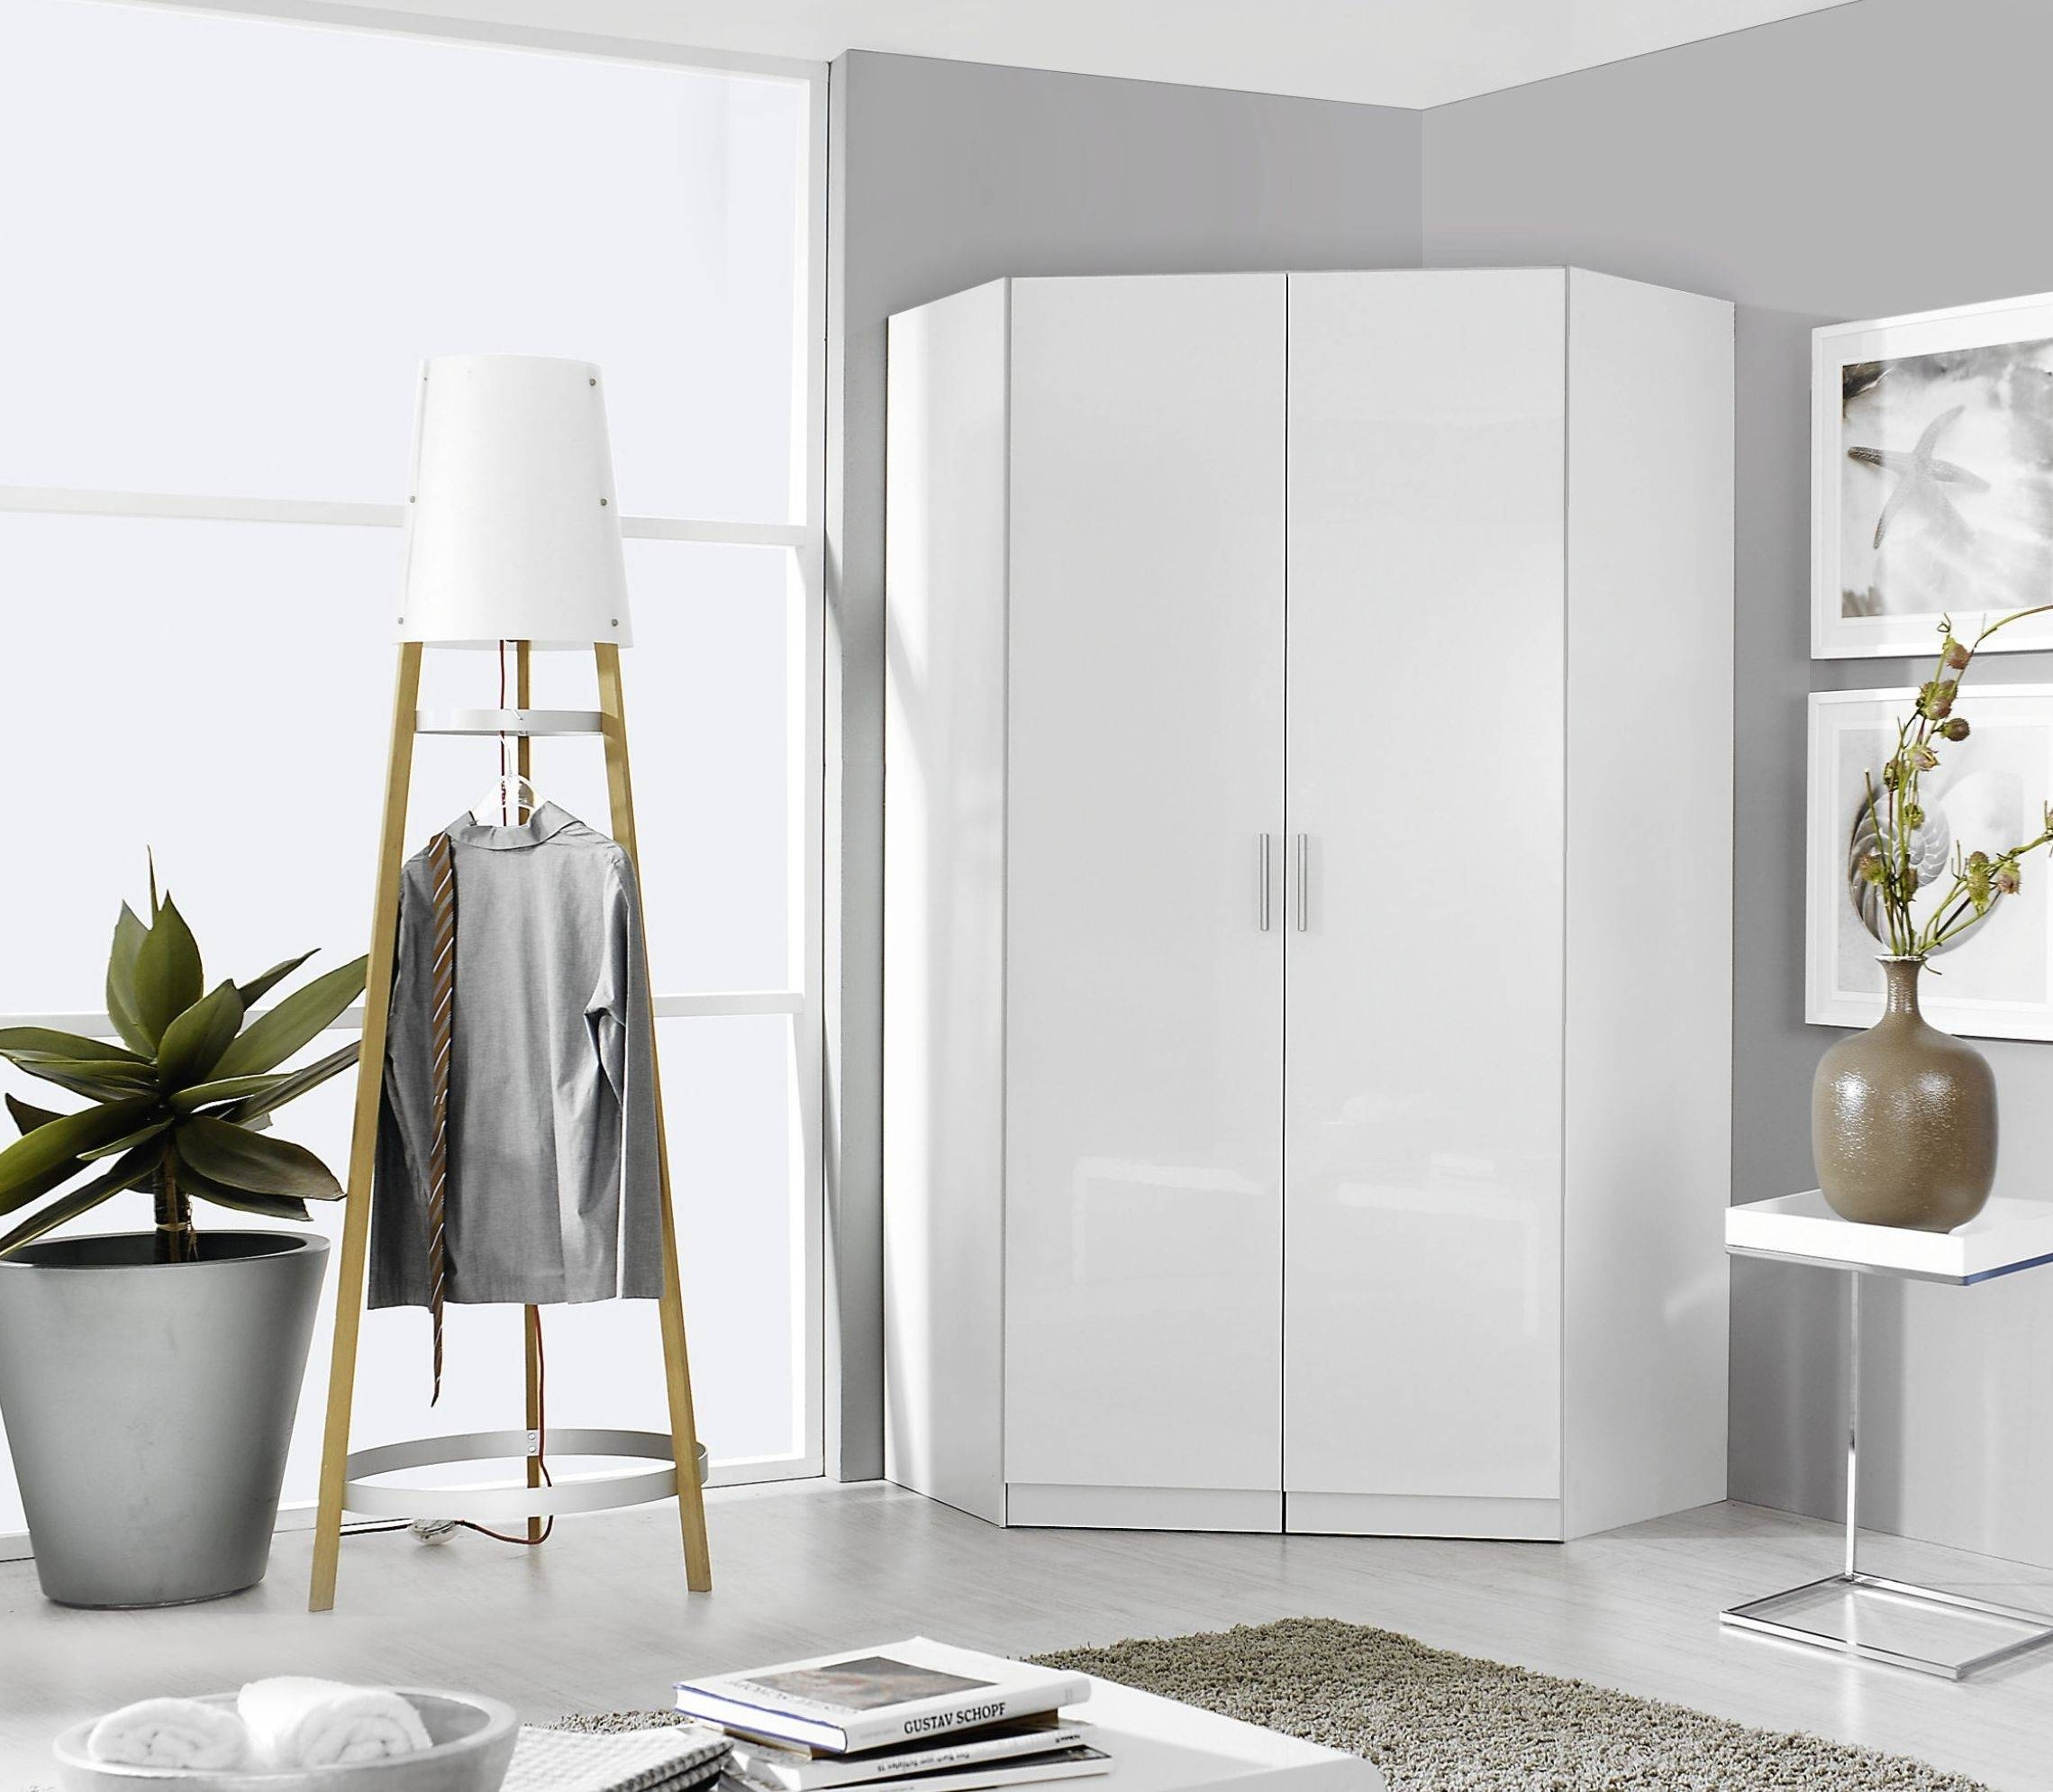 Rauch Corner Wardrobes |Corner Wardrobe With Mirrors & Trims intended for Corner Wardrobes (Image 15 of 15)